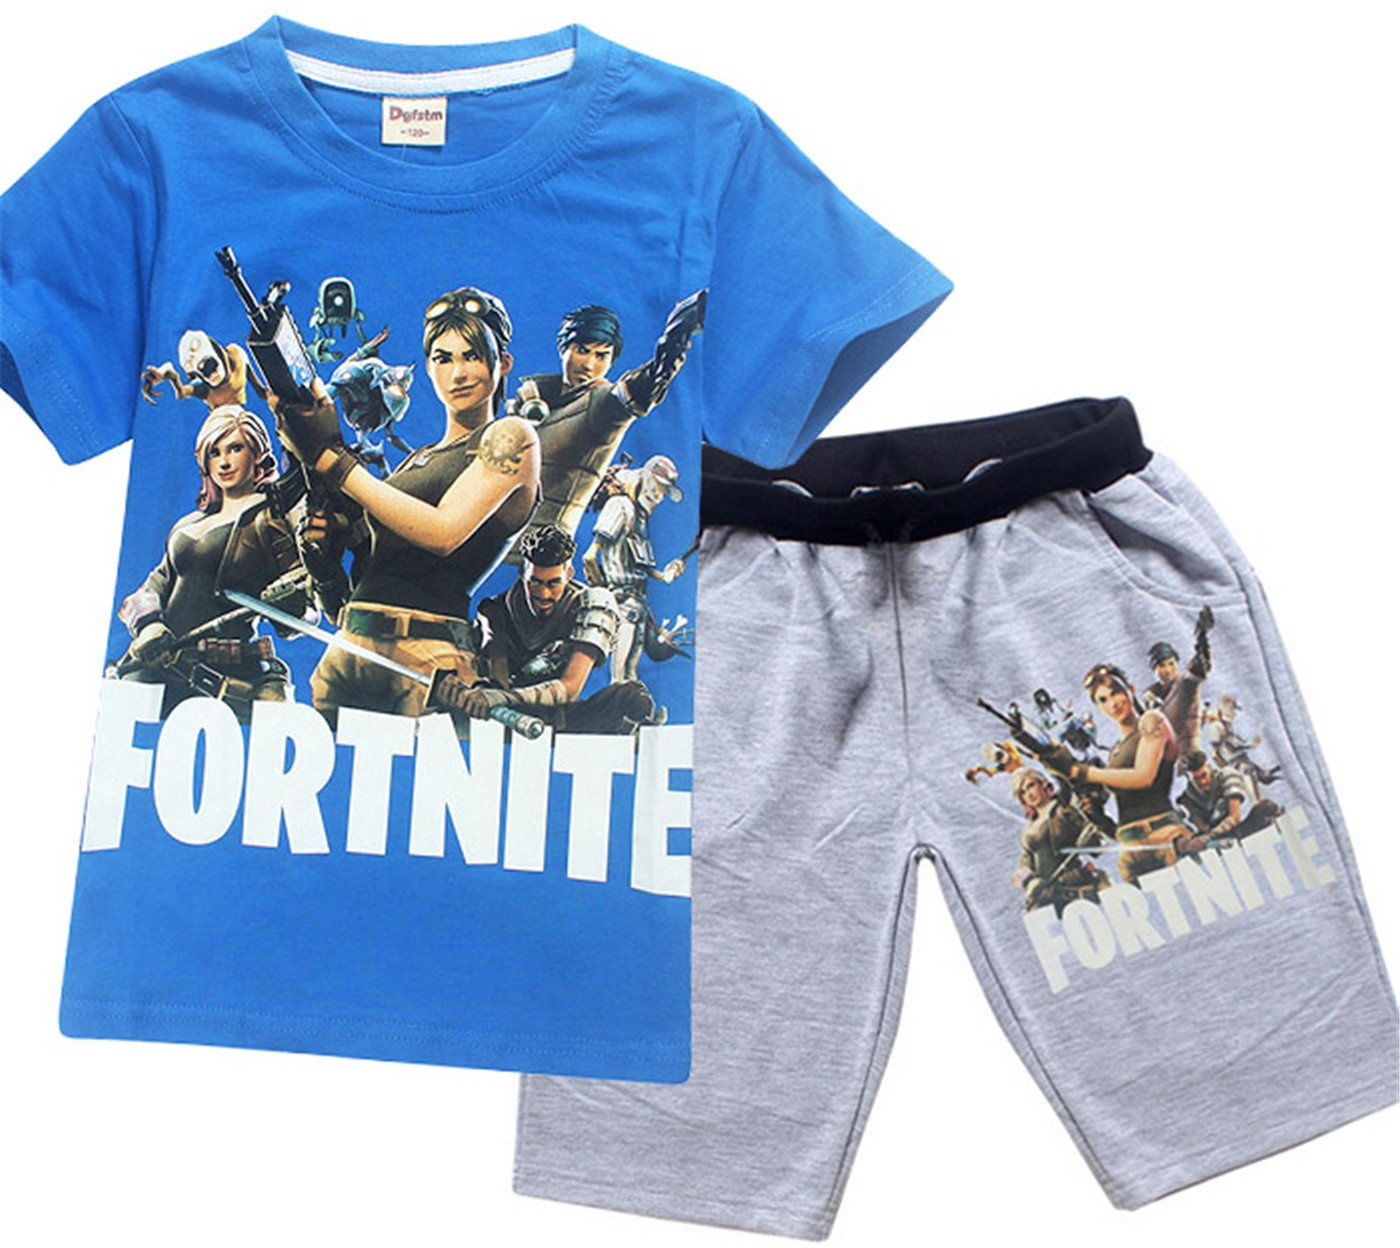 SERAPHY Boys T-Shirt and Shorts Suit Fortnite Clothing Boys Clothes 8383L-A-120